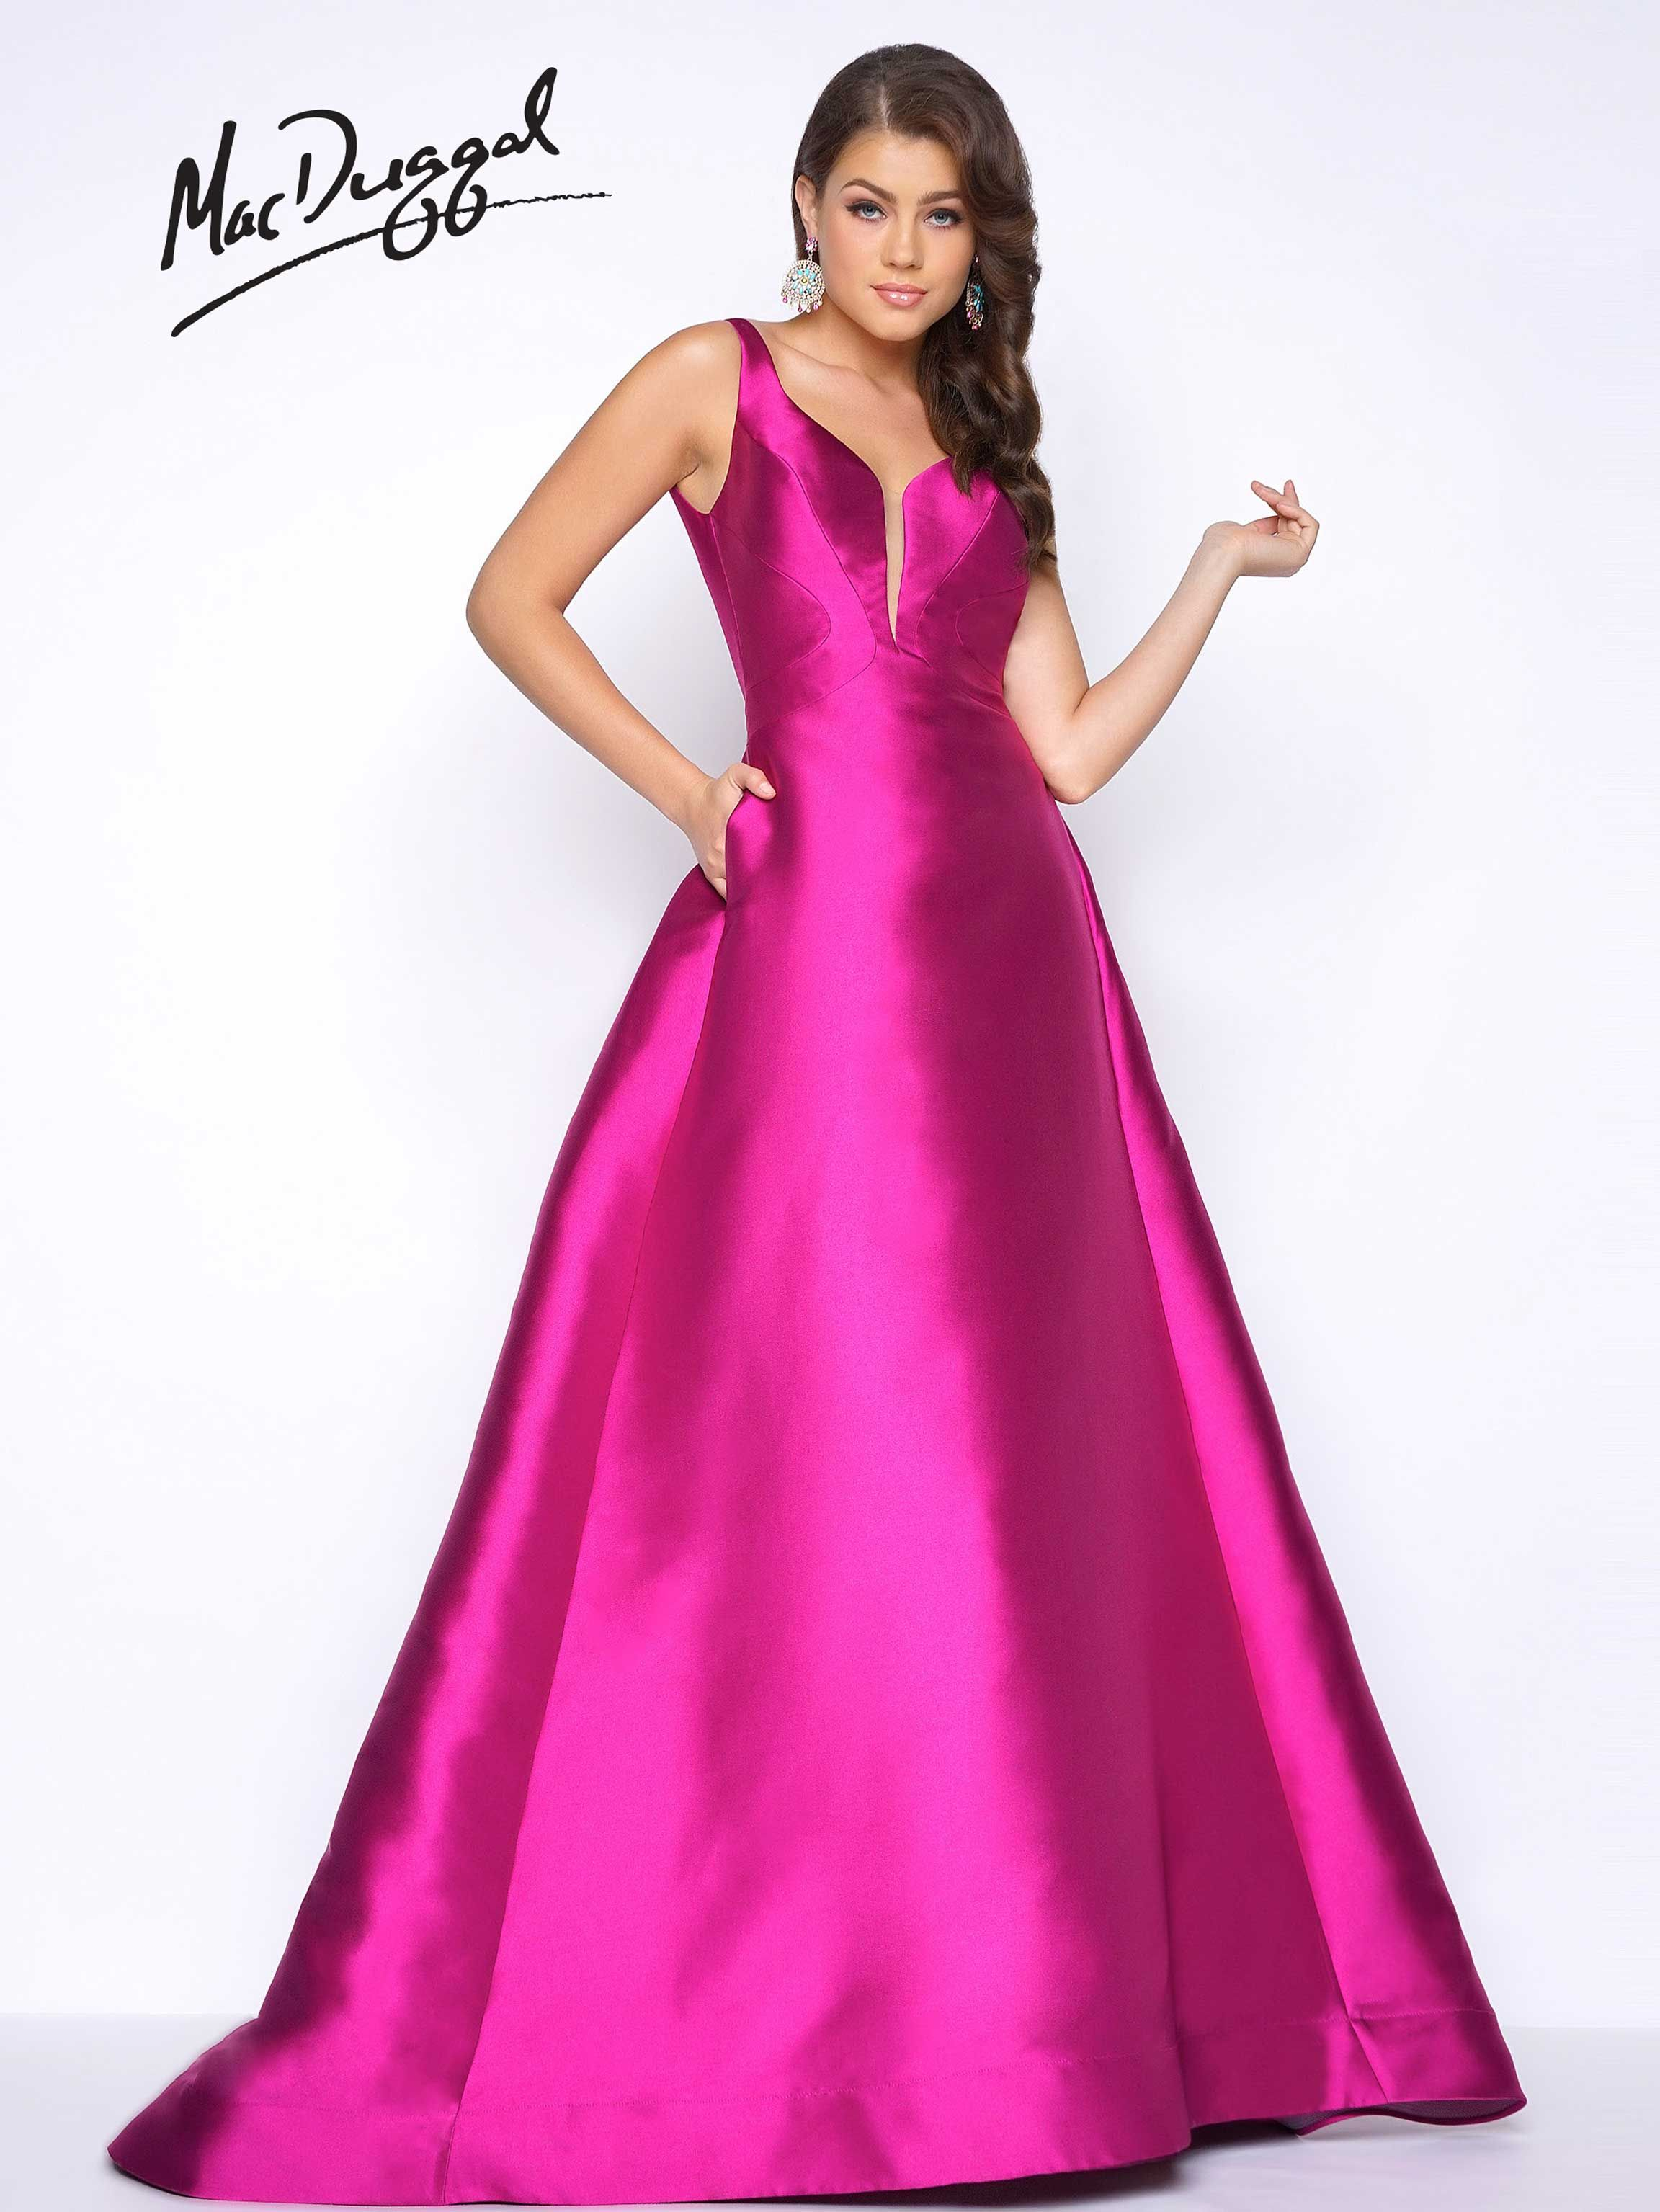 Sleeveless satin aline floor length ball gown with open back and